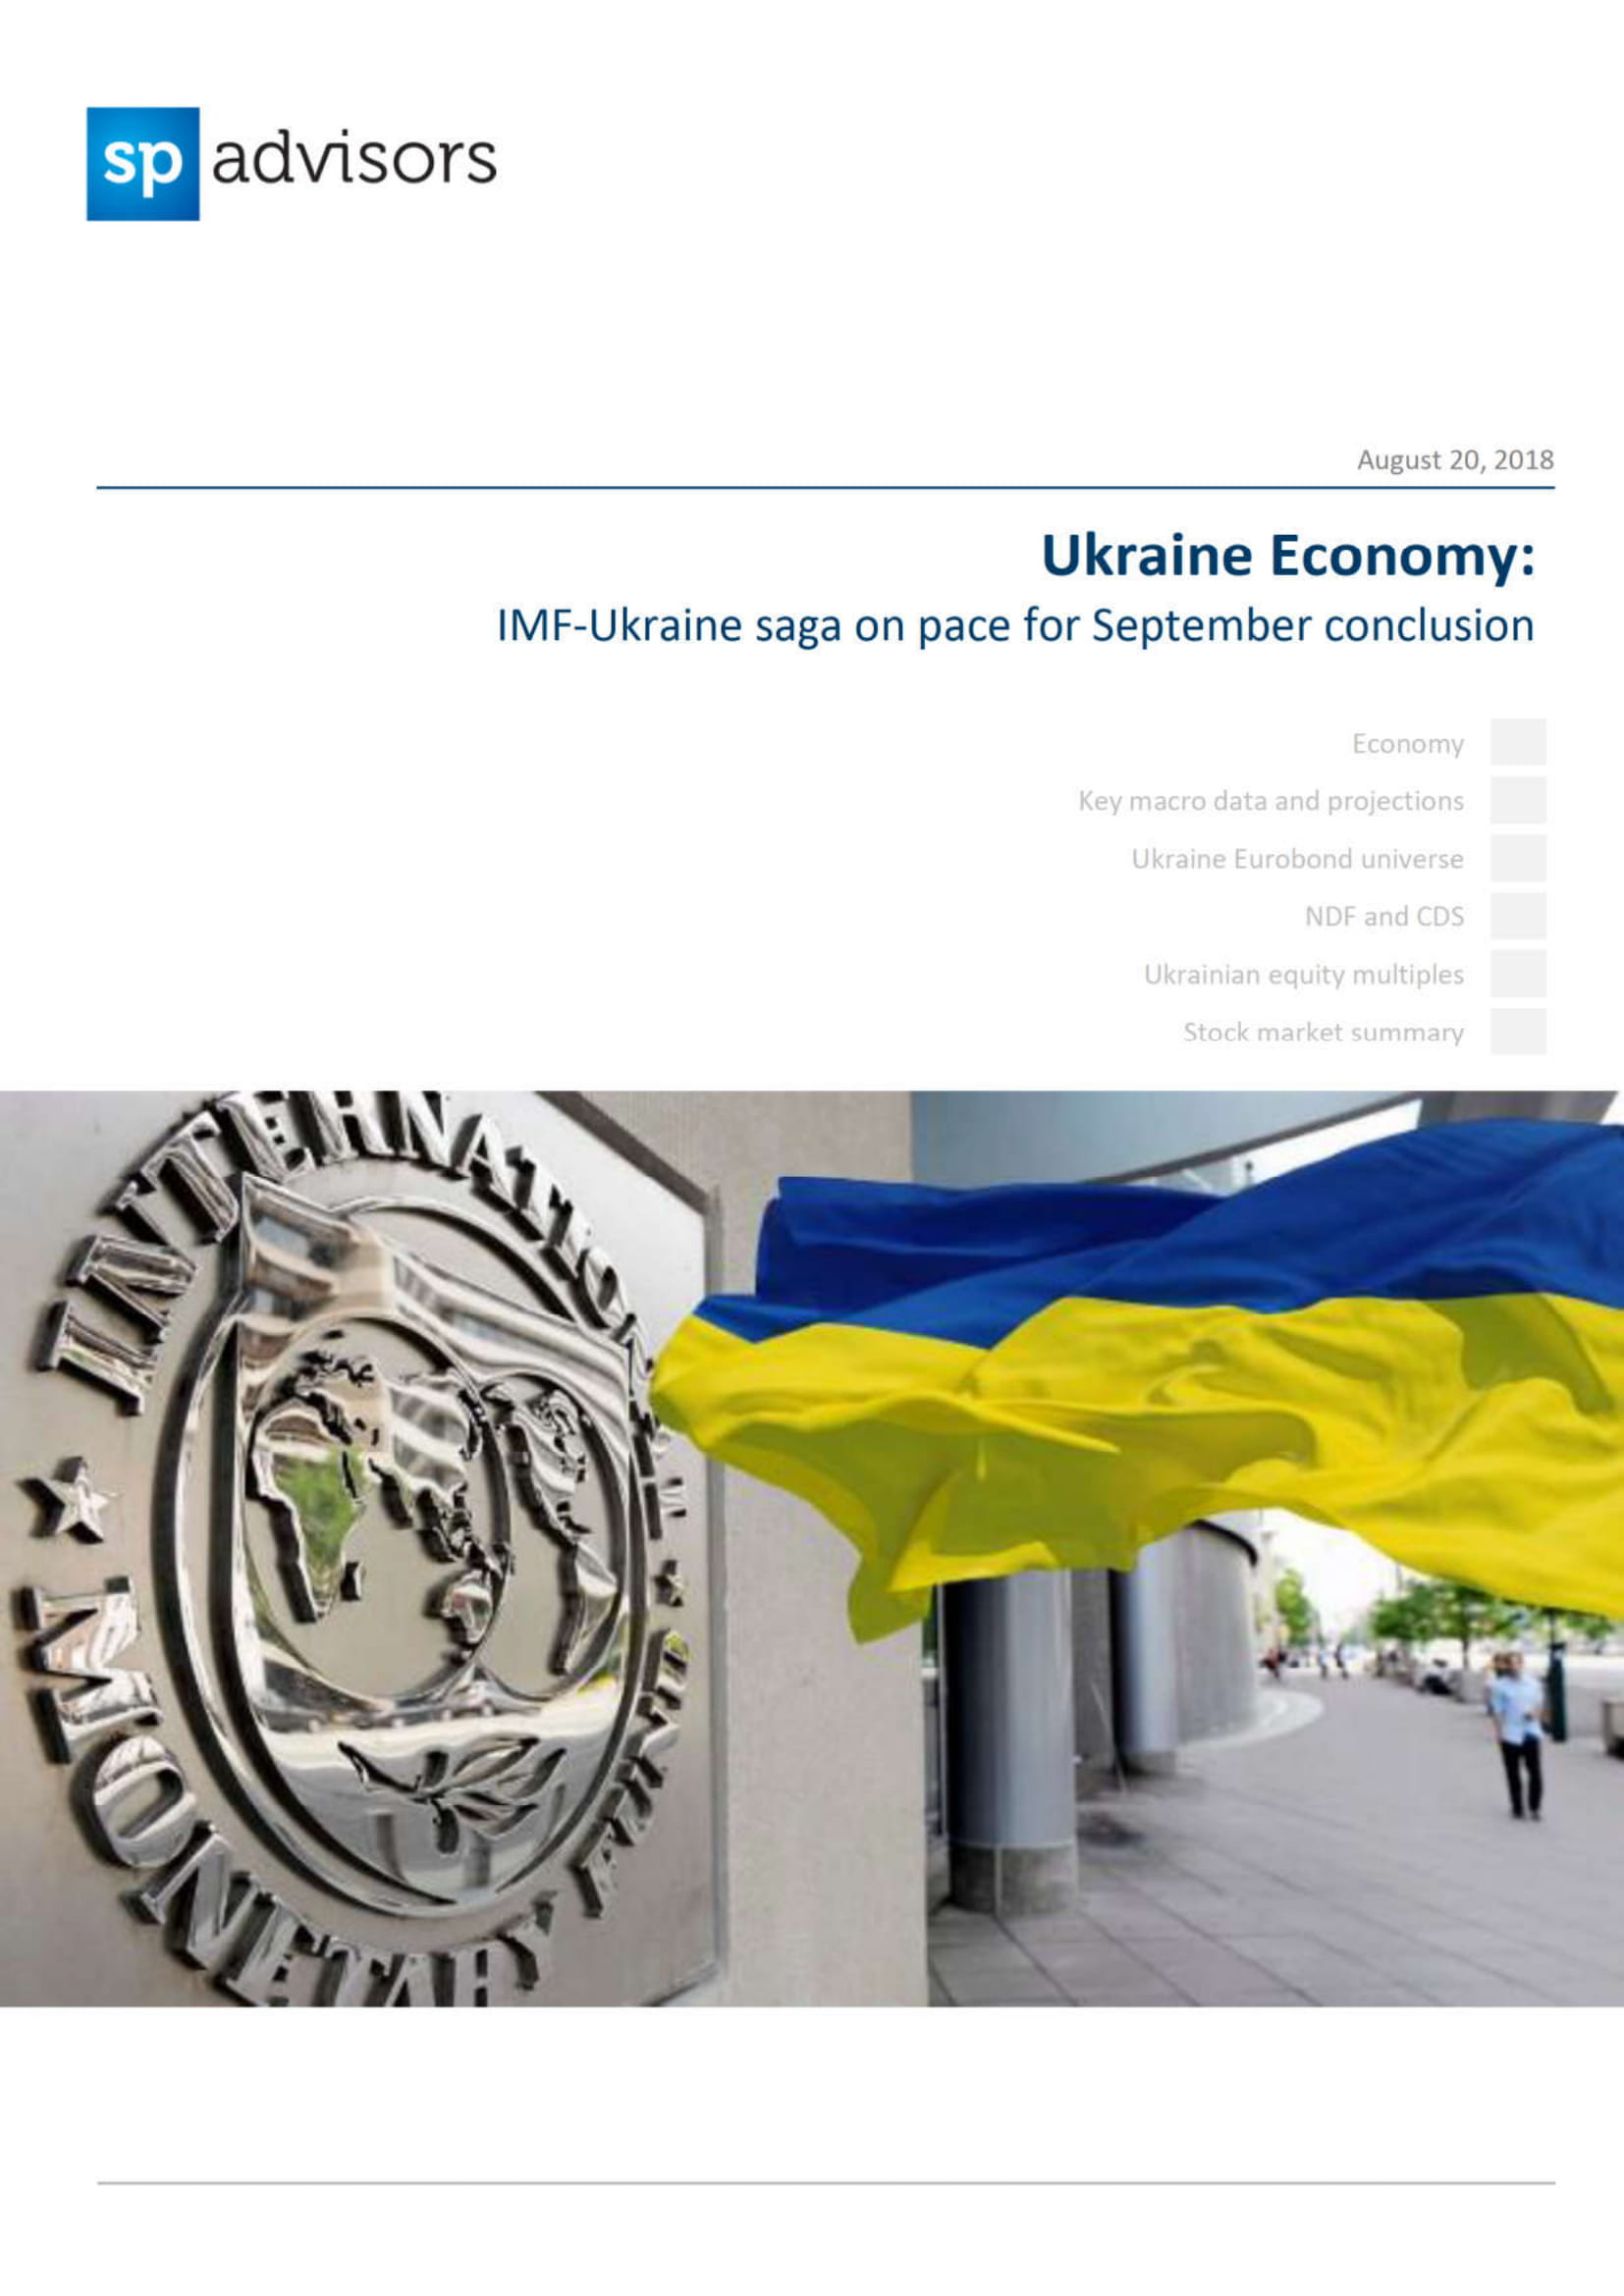 Ukraine Economy: IMF-Ukraine saga on pace for September conclusion. August 20, 2018